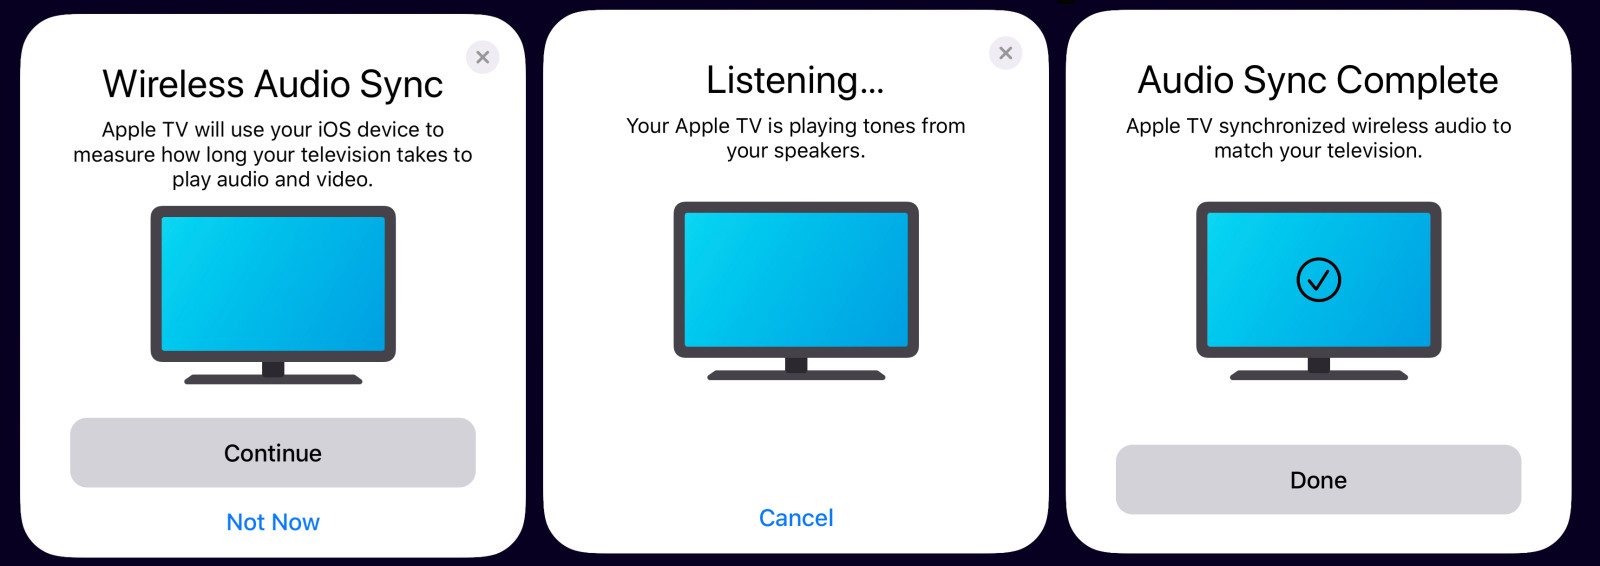 iOS 13 : l'iPhone corrige les problèmes de synchro audio de l'Apple TV 1